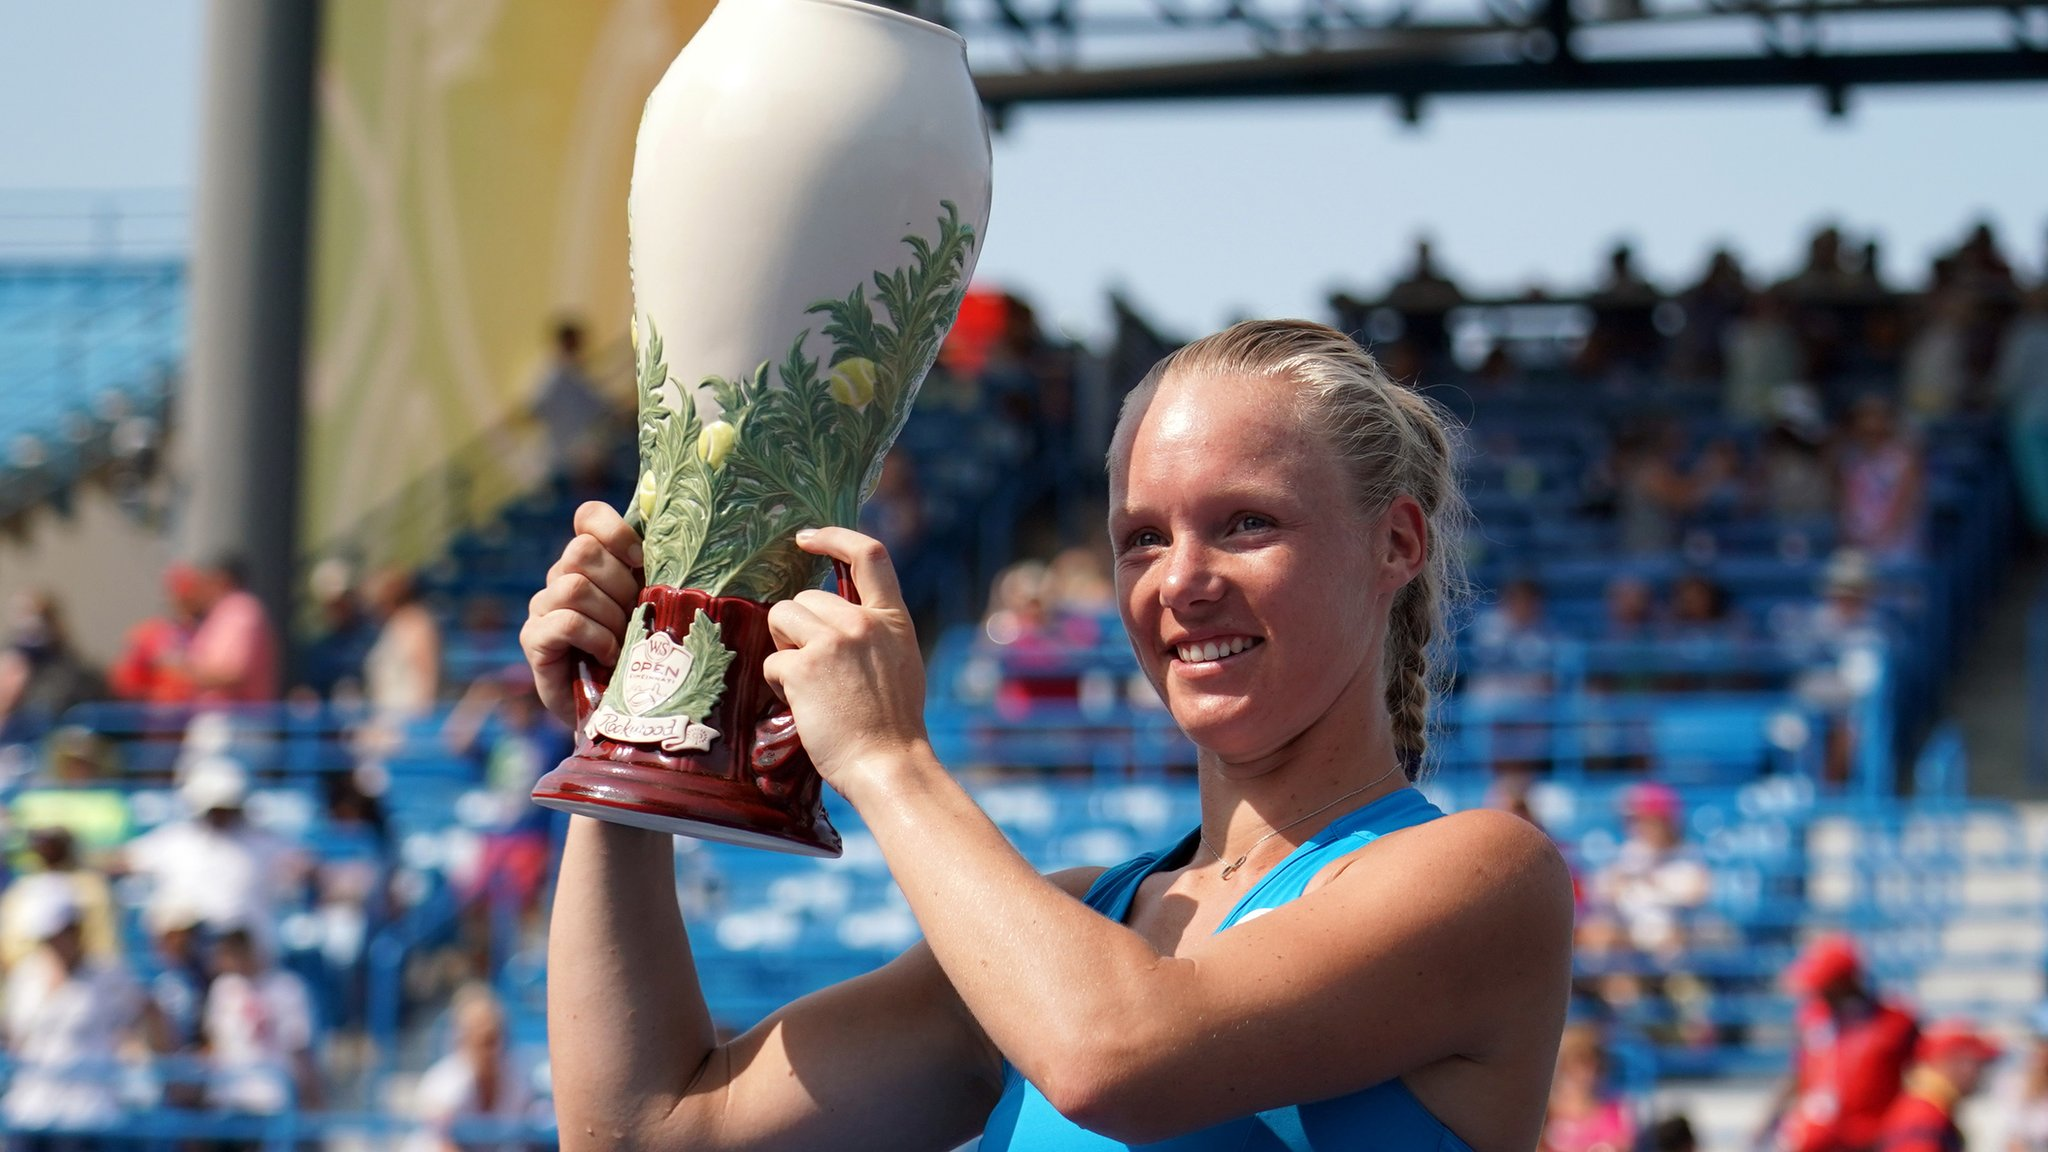 Bertens upsets world number one Halep to win in Cincinnati